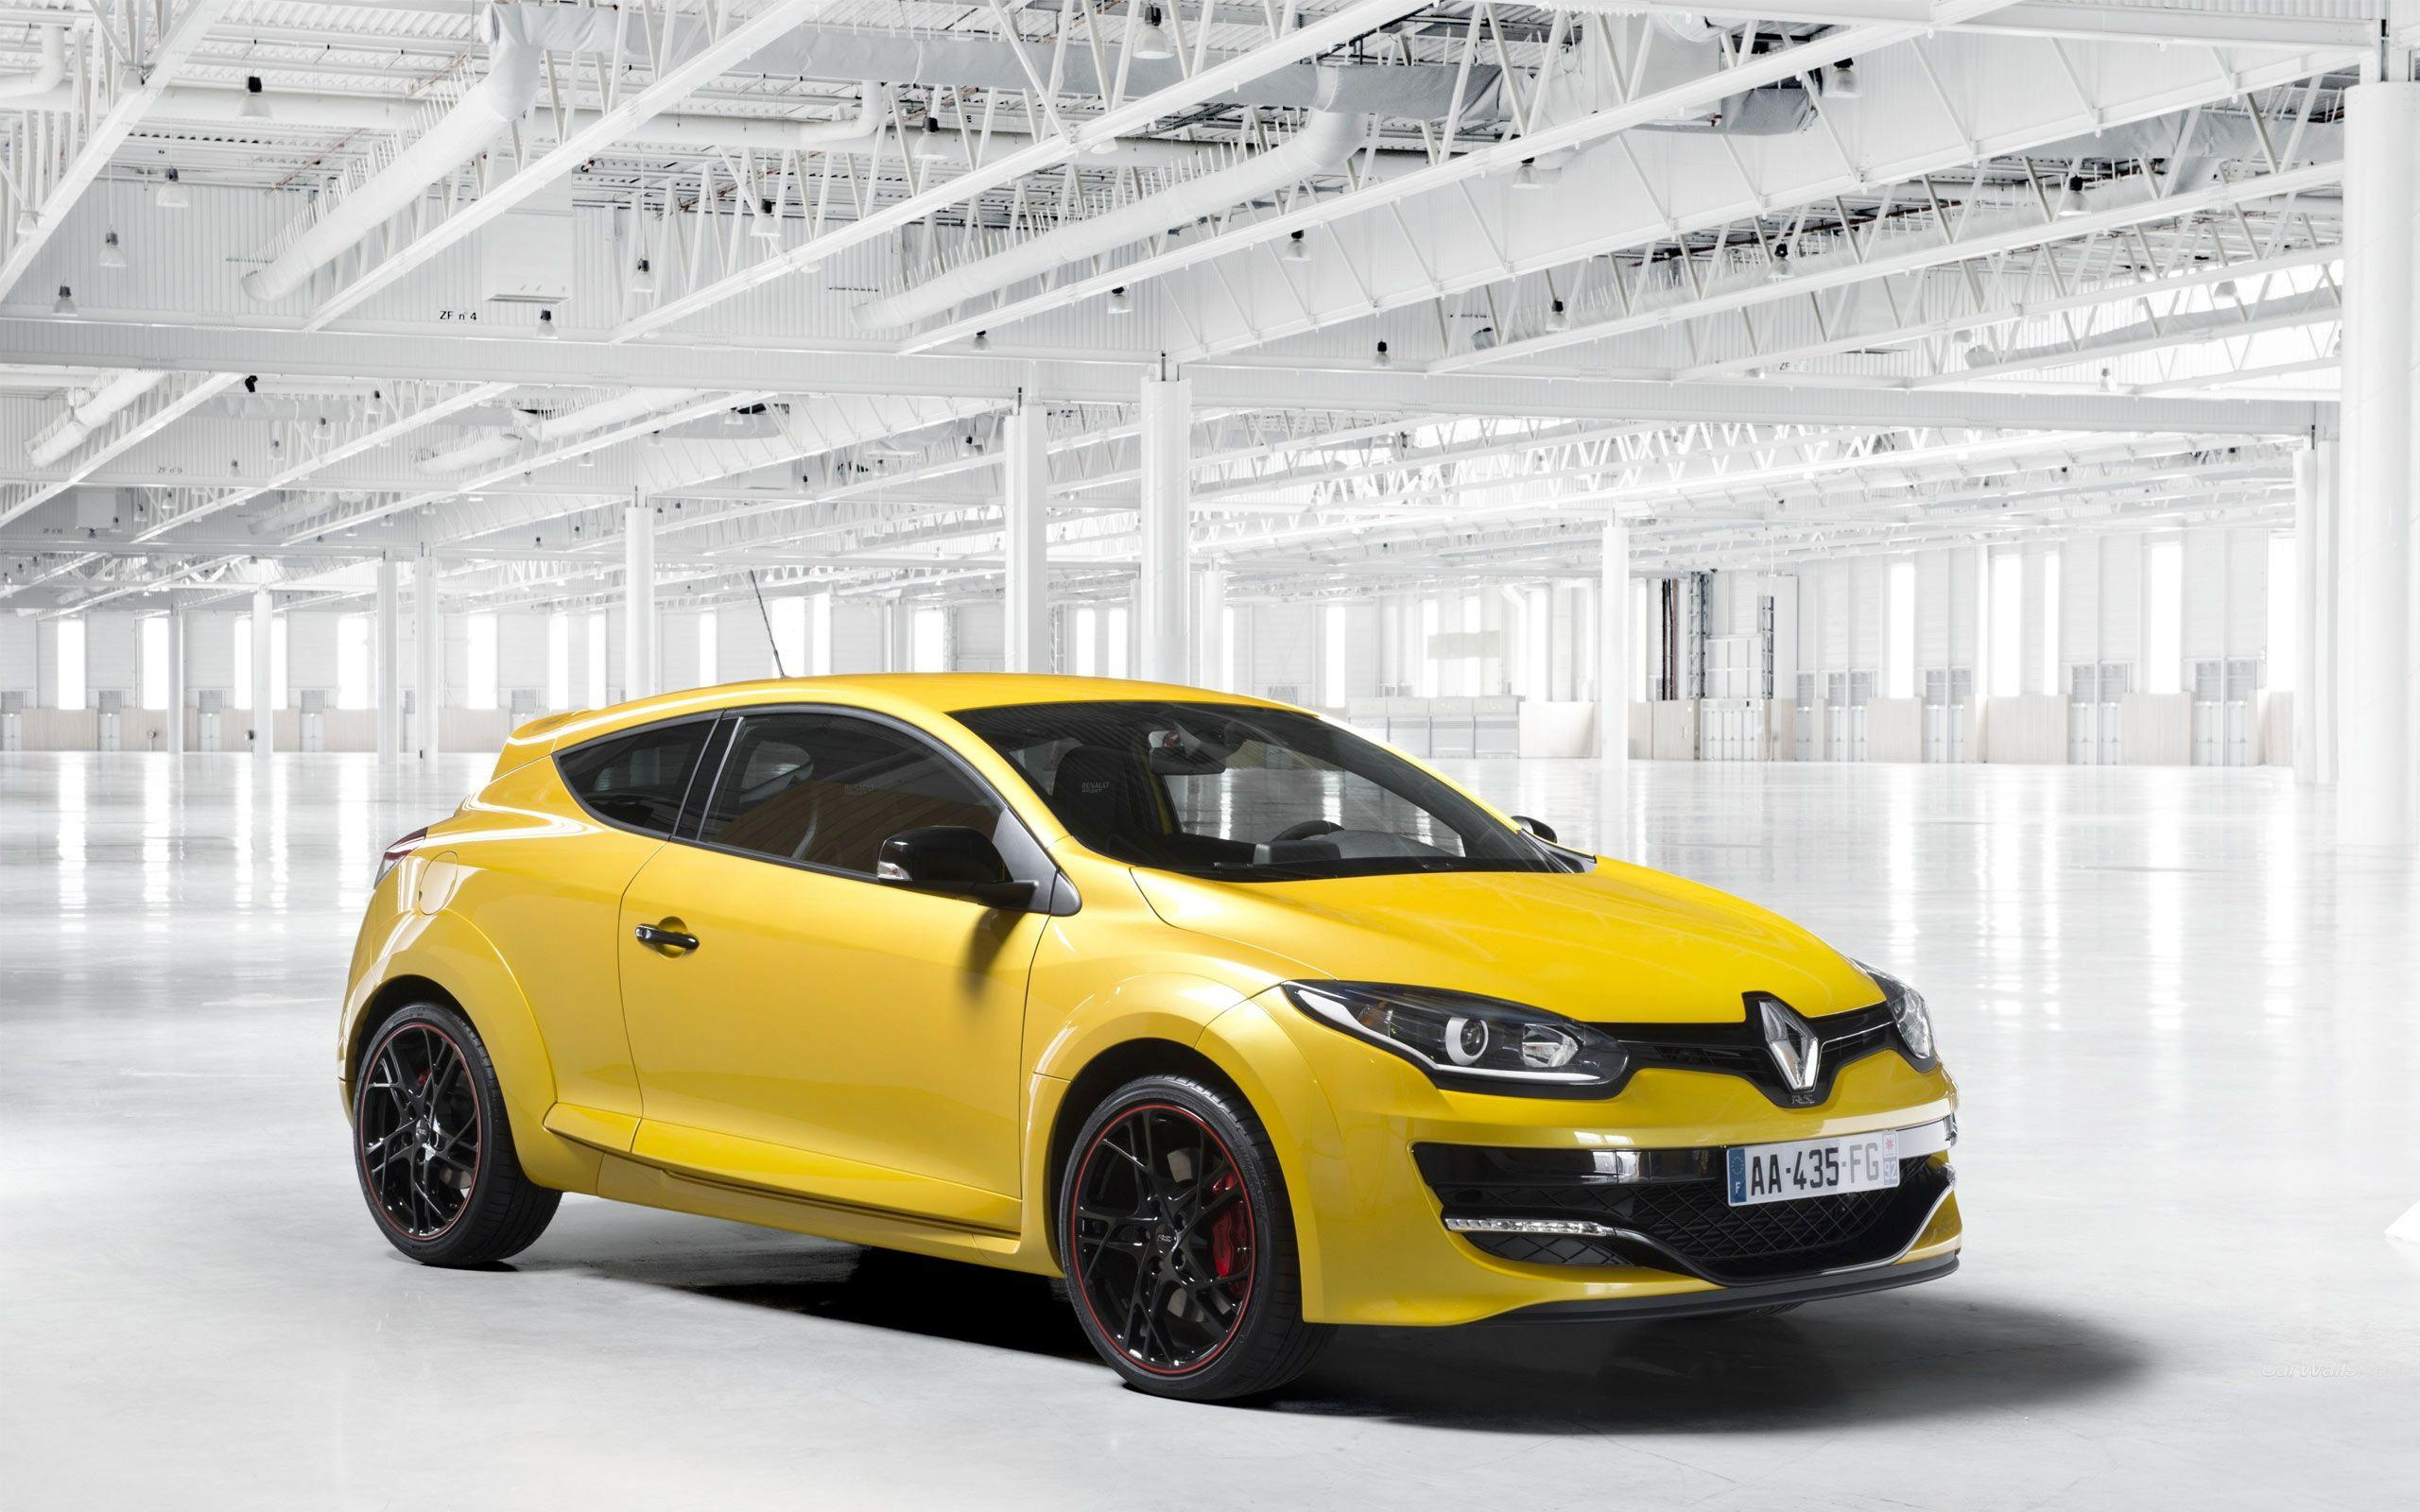 2014 Renault Megane RS Wallpapers